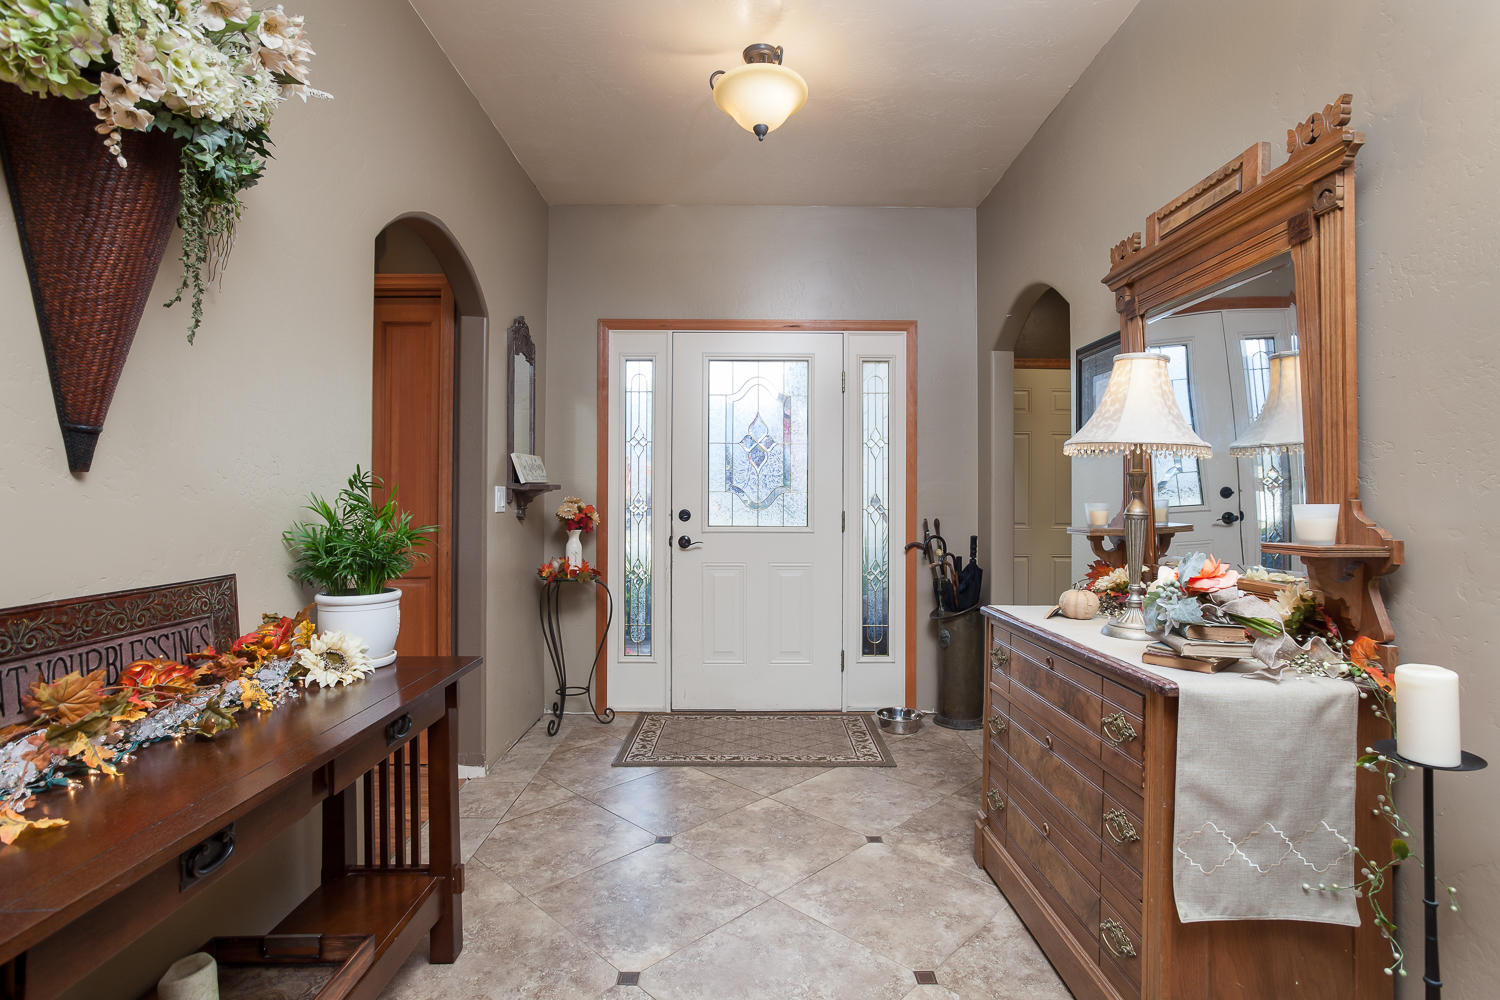 Tile Entry w/Arched Doorways